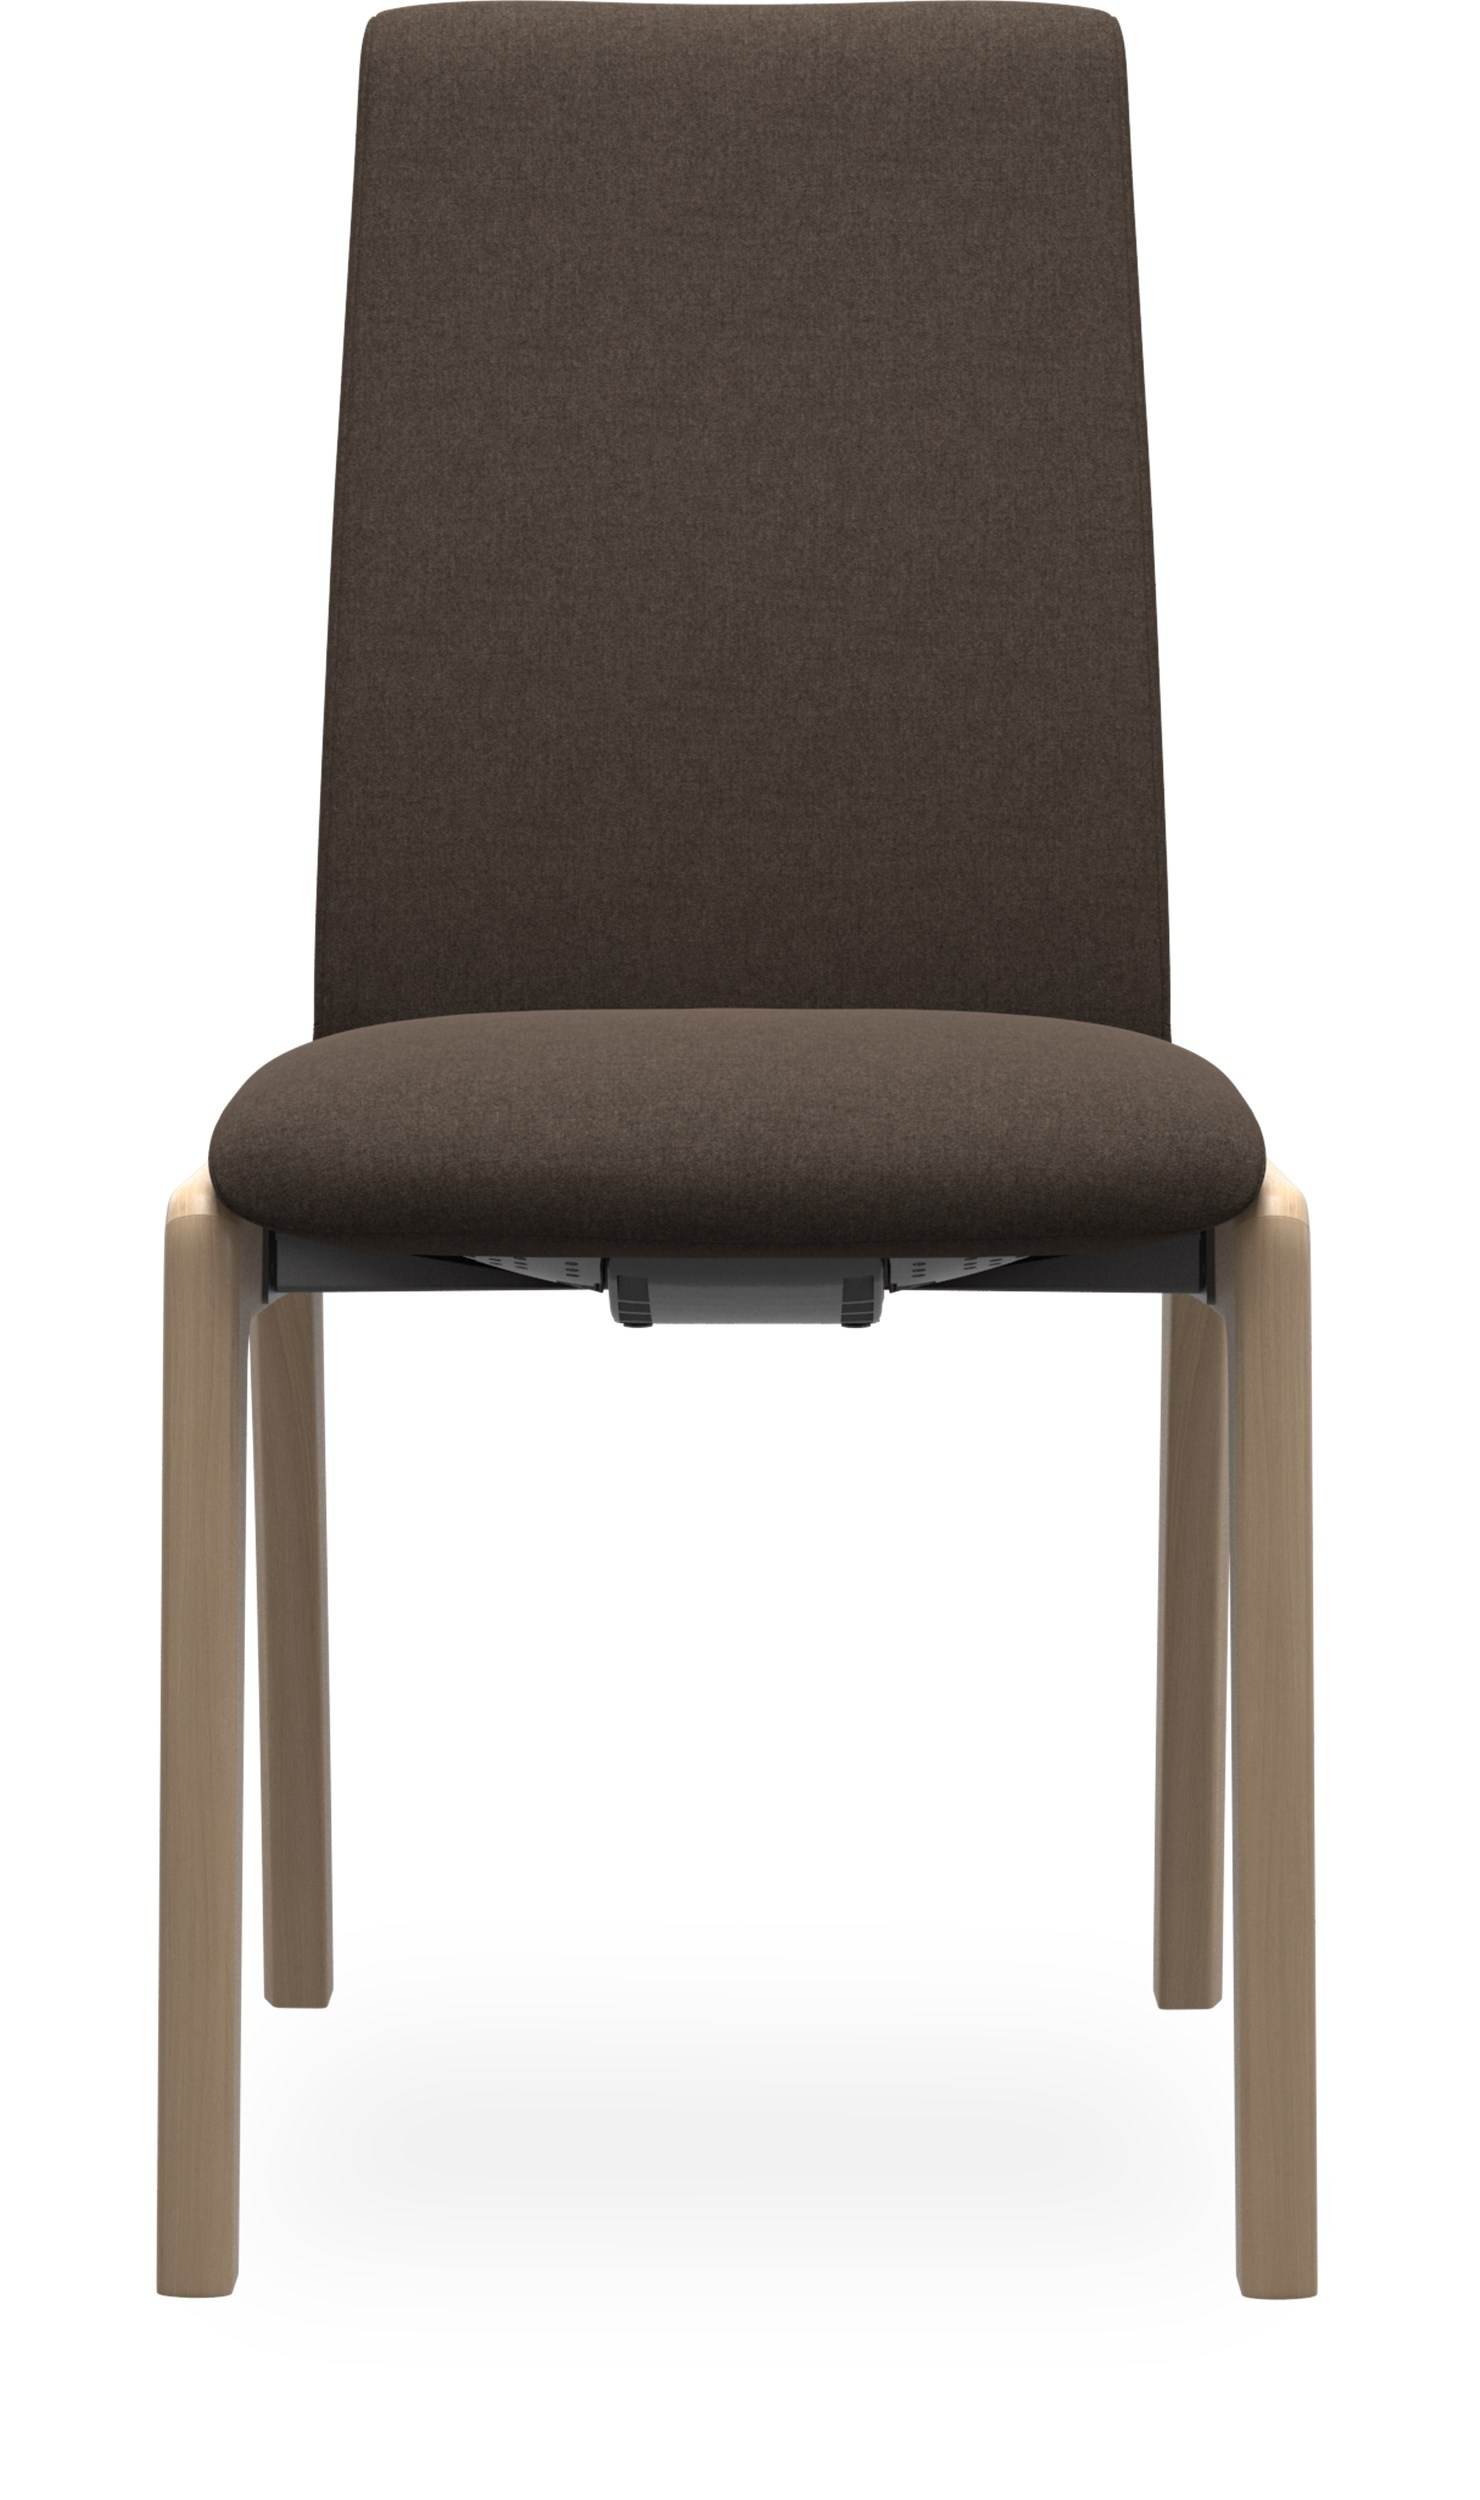 Stressless M D100 Laurel low Spisebordsstol - Calido 579-86 Brown stof og stel i lakeret, massiv eg